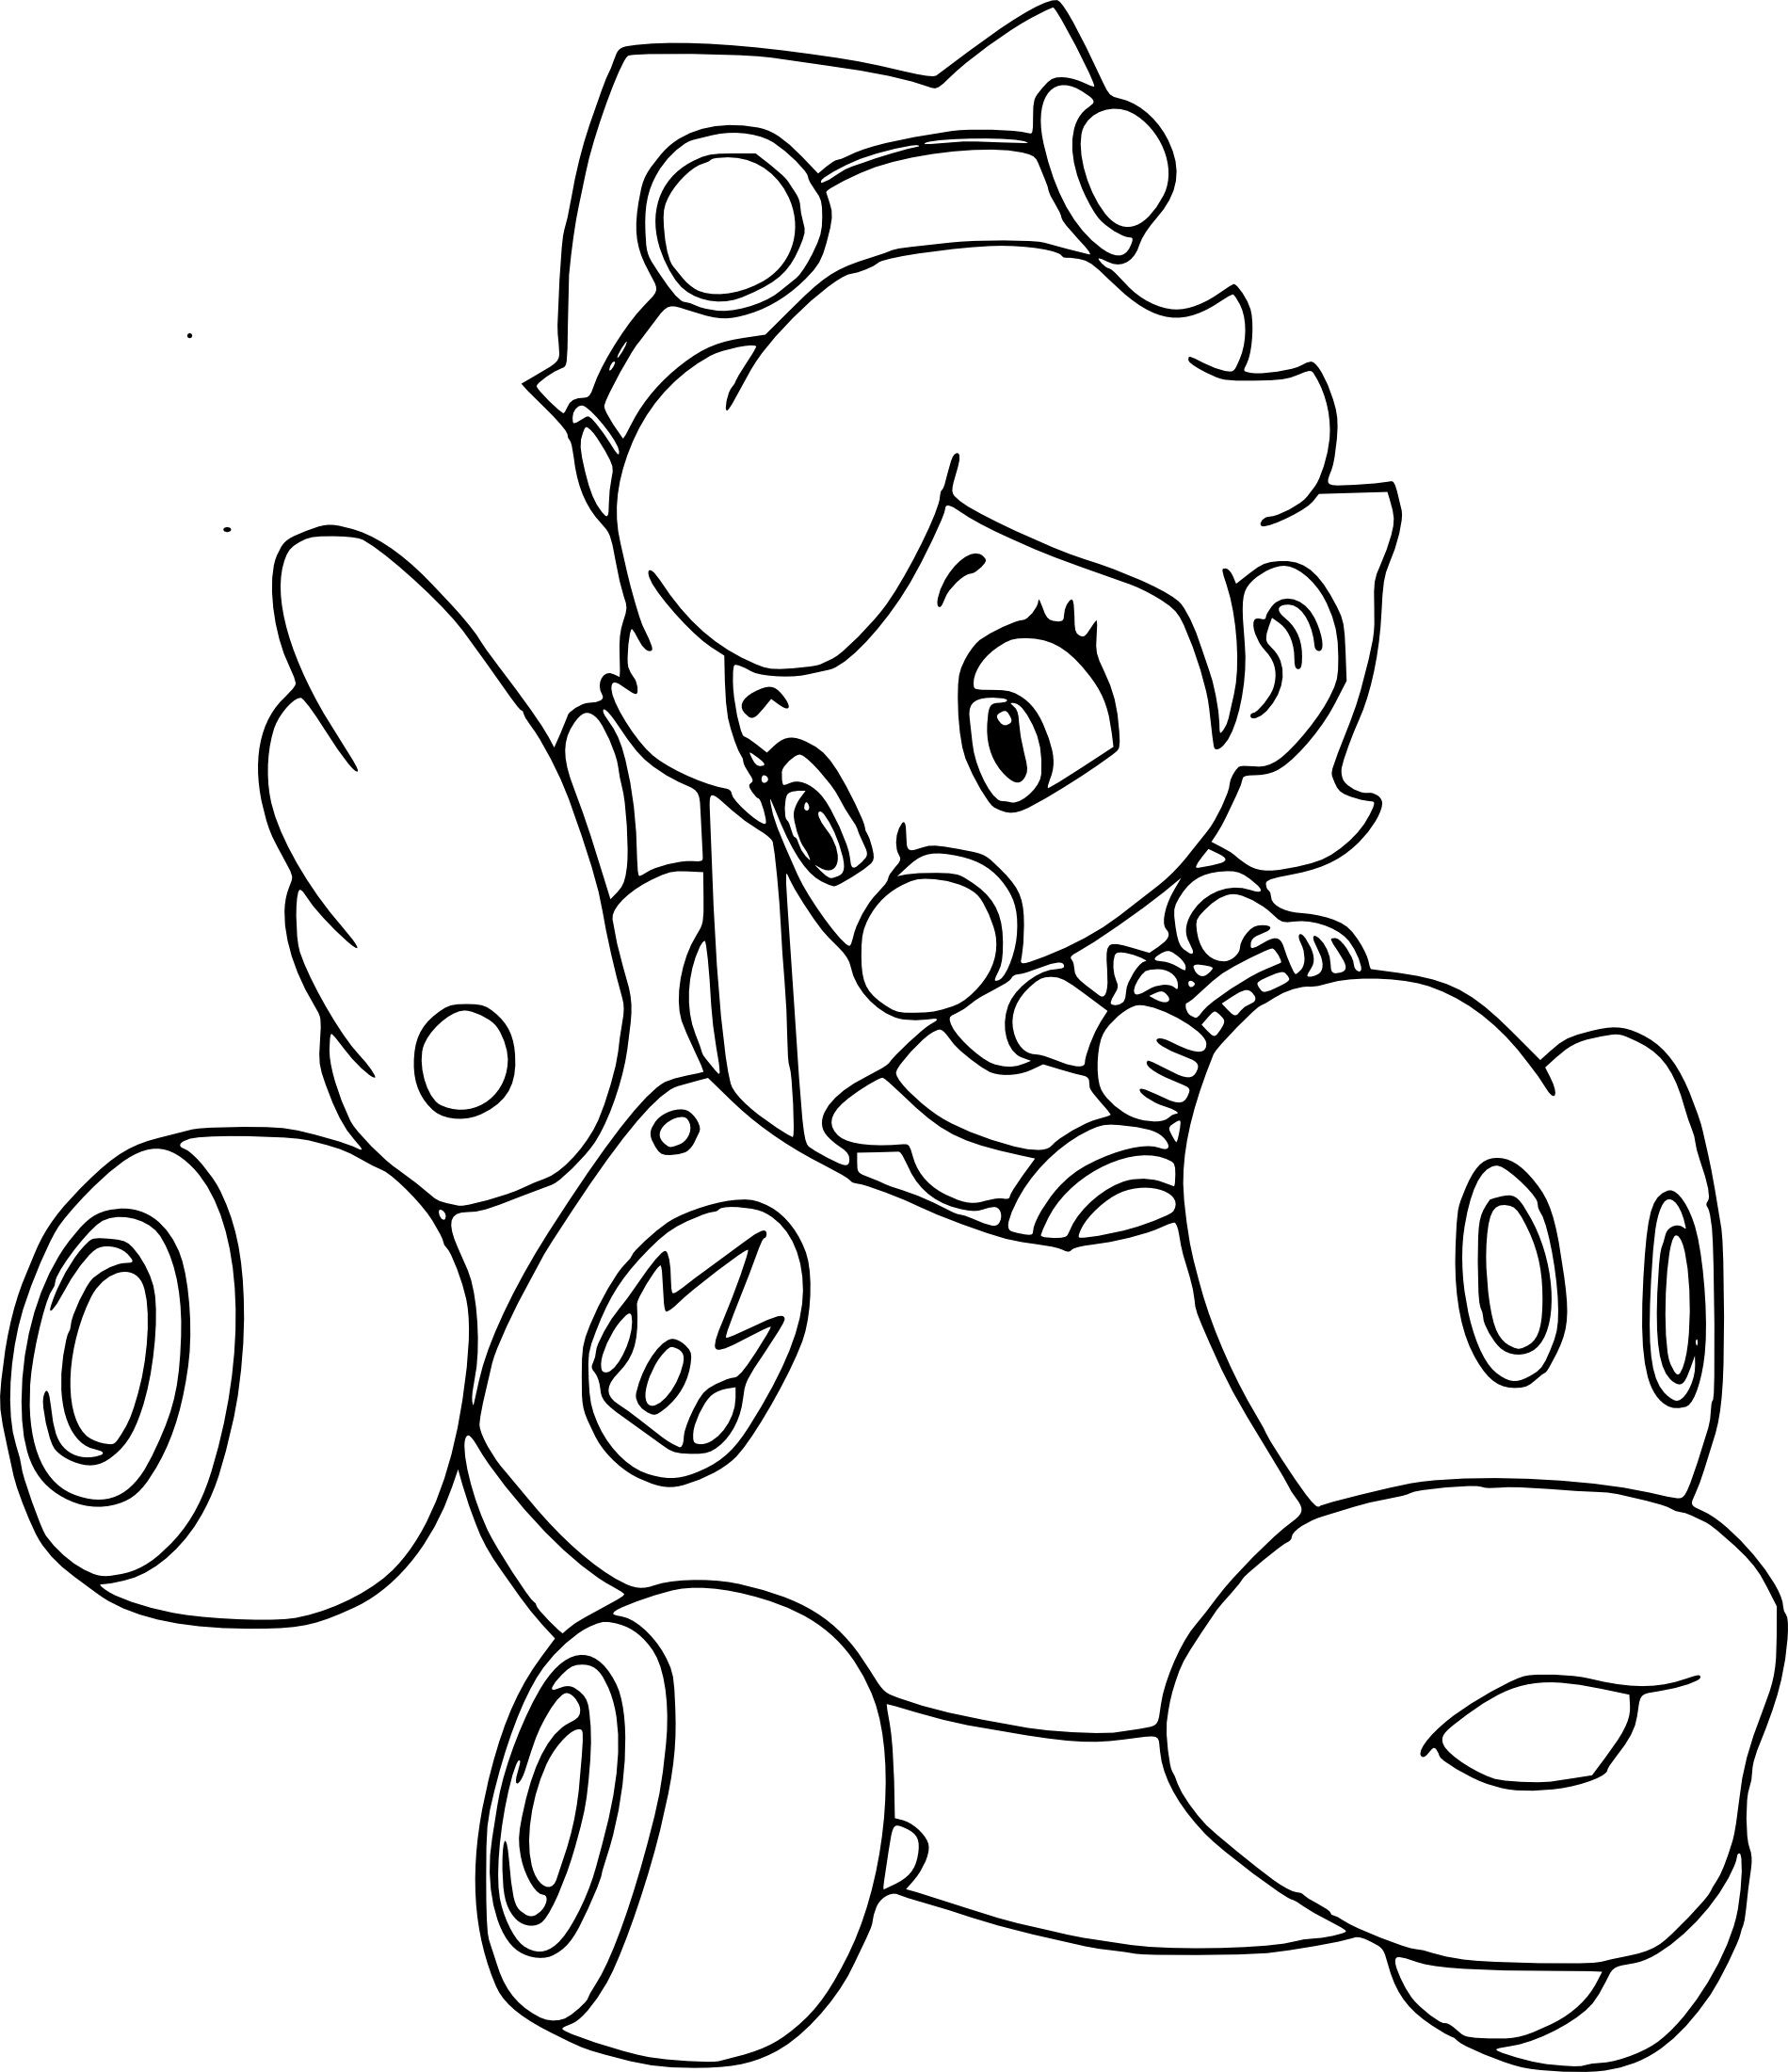 Coloriage Peach Mario Kart Coloriagemario In 2020 Super Mario